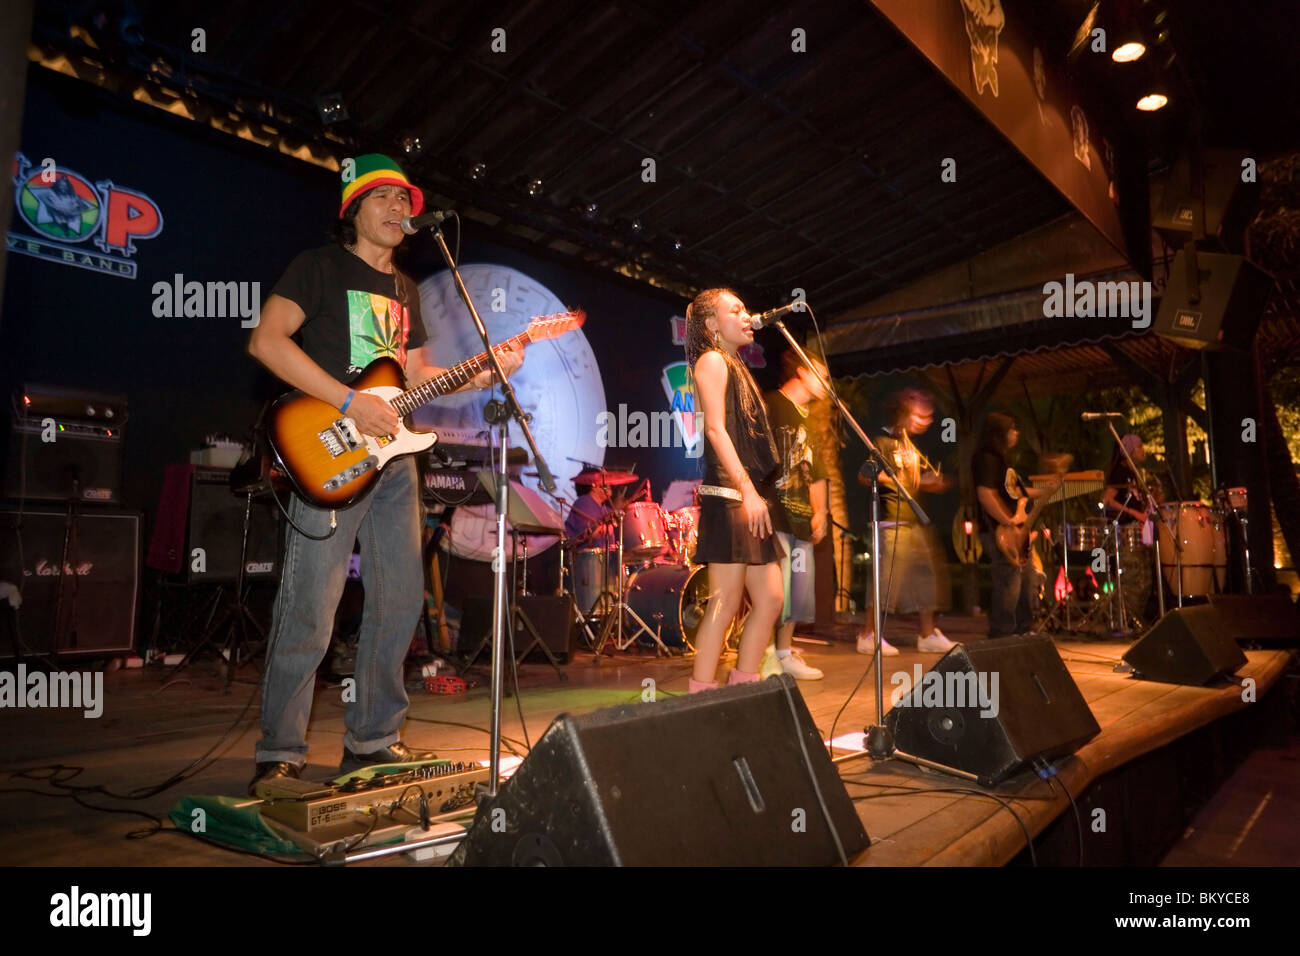 Band on stage of the Reggae Pub, Chaweng Beach, Hat Chaweng Central, Ko Samui, Thailand - Stock Image